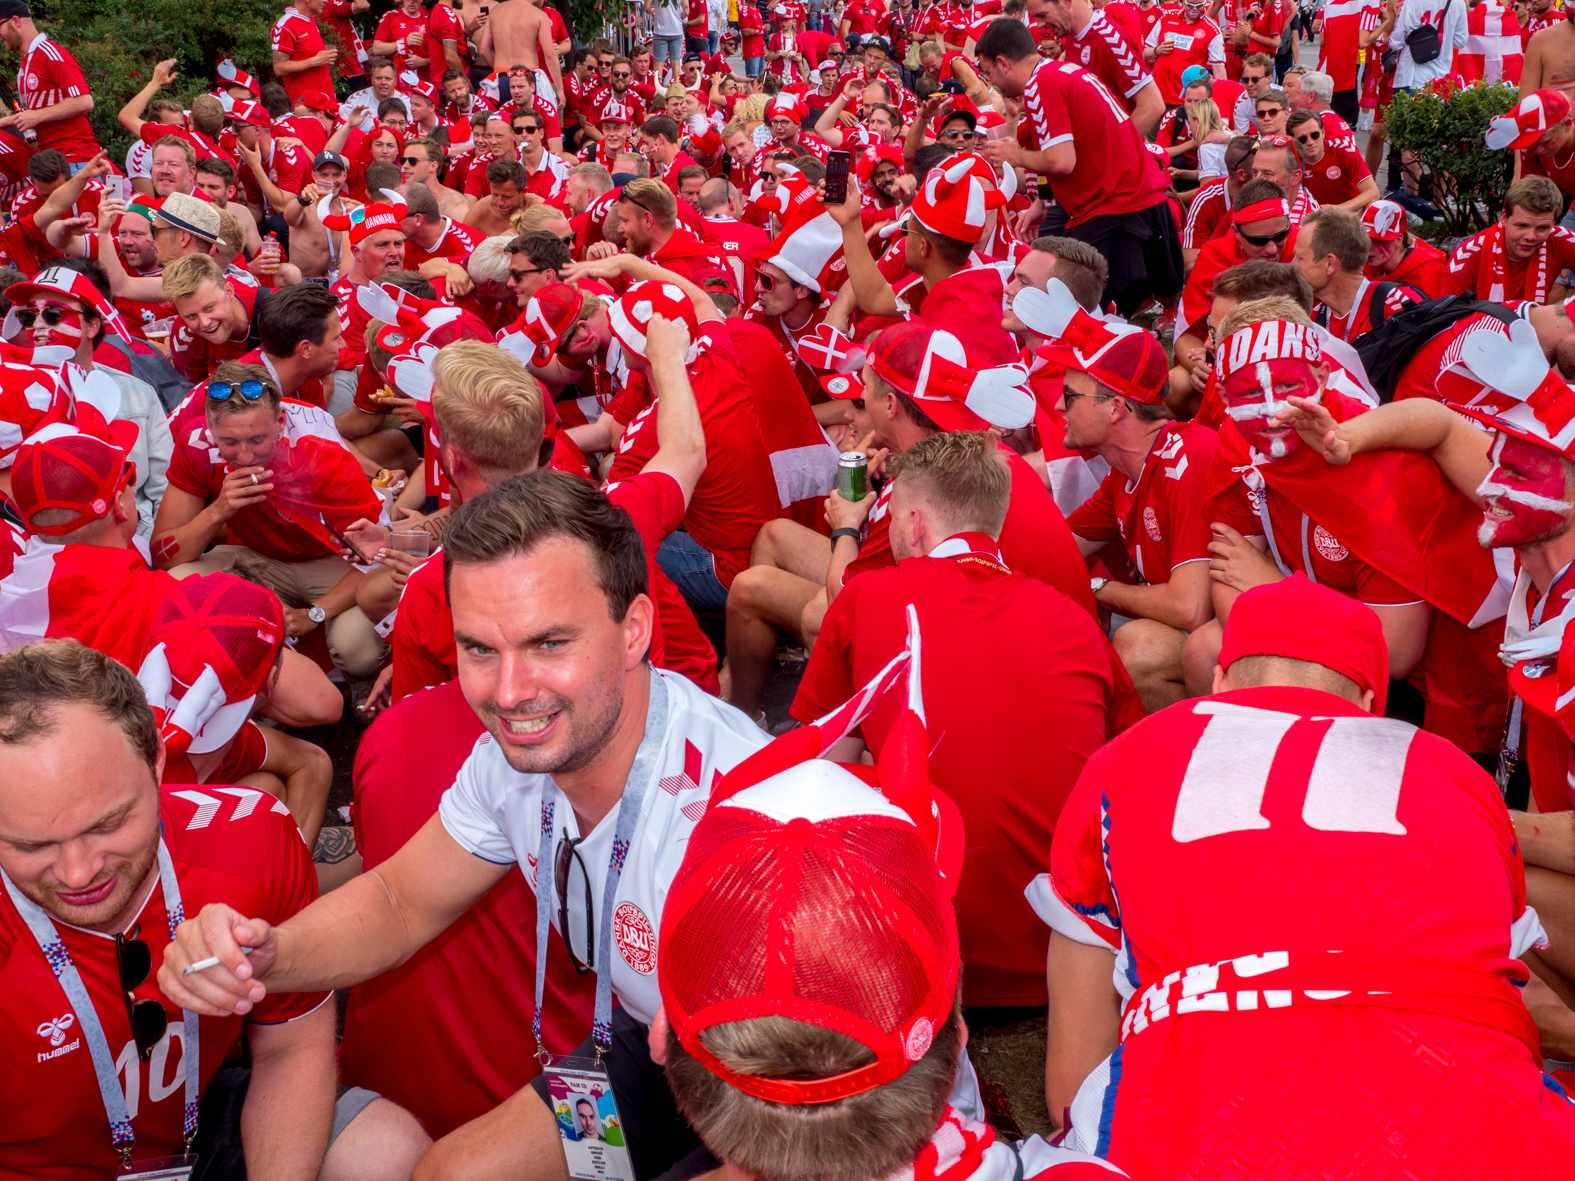 Danish fans drink beer in central Moscow ahead of their match with France.The 21st FIFA World Cup football tournament took place in Russia in 2018. It was the first World Cup to be held in Eastern Europe and the eleventh time that it has been held in Europe. For the first time the tournament took place on two continents – Europe and Asia. All but two of the stadium venues were in European Russia.